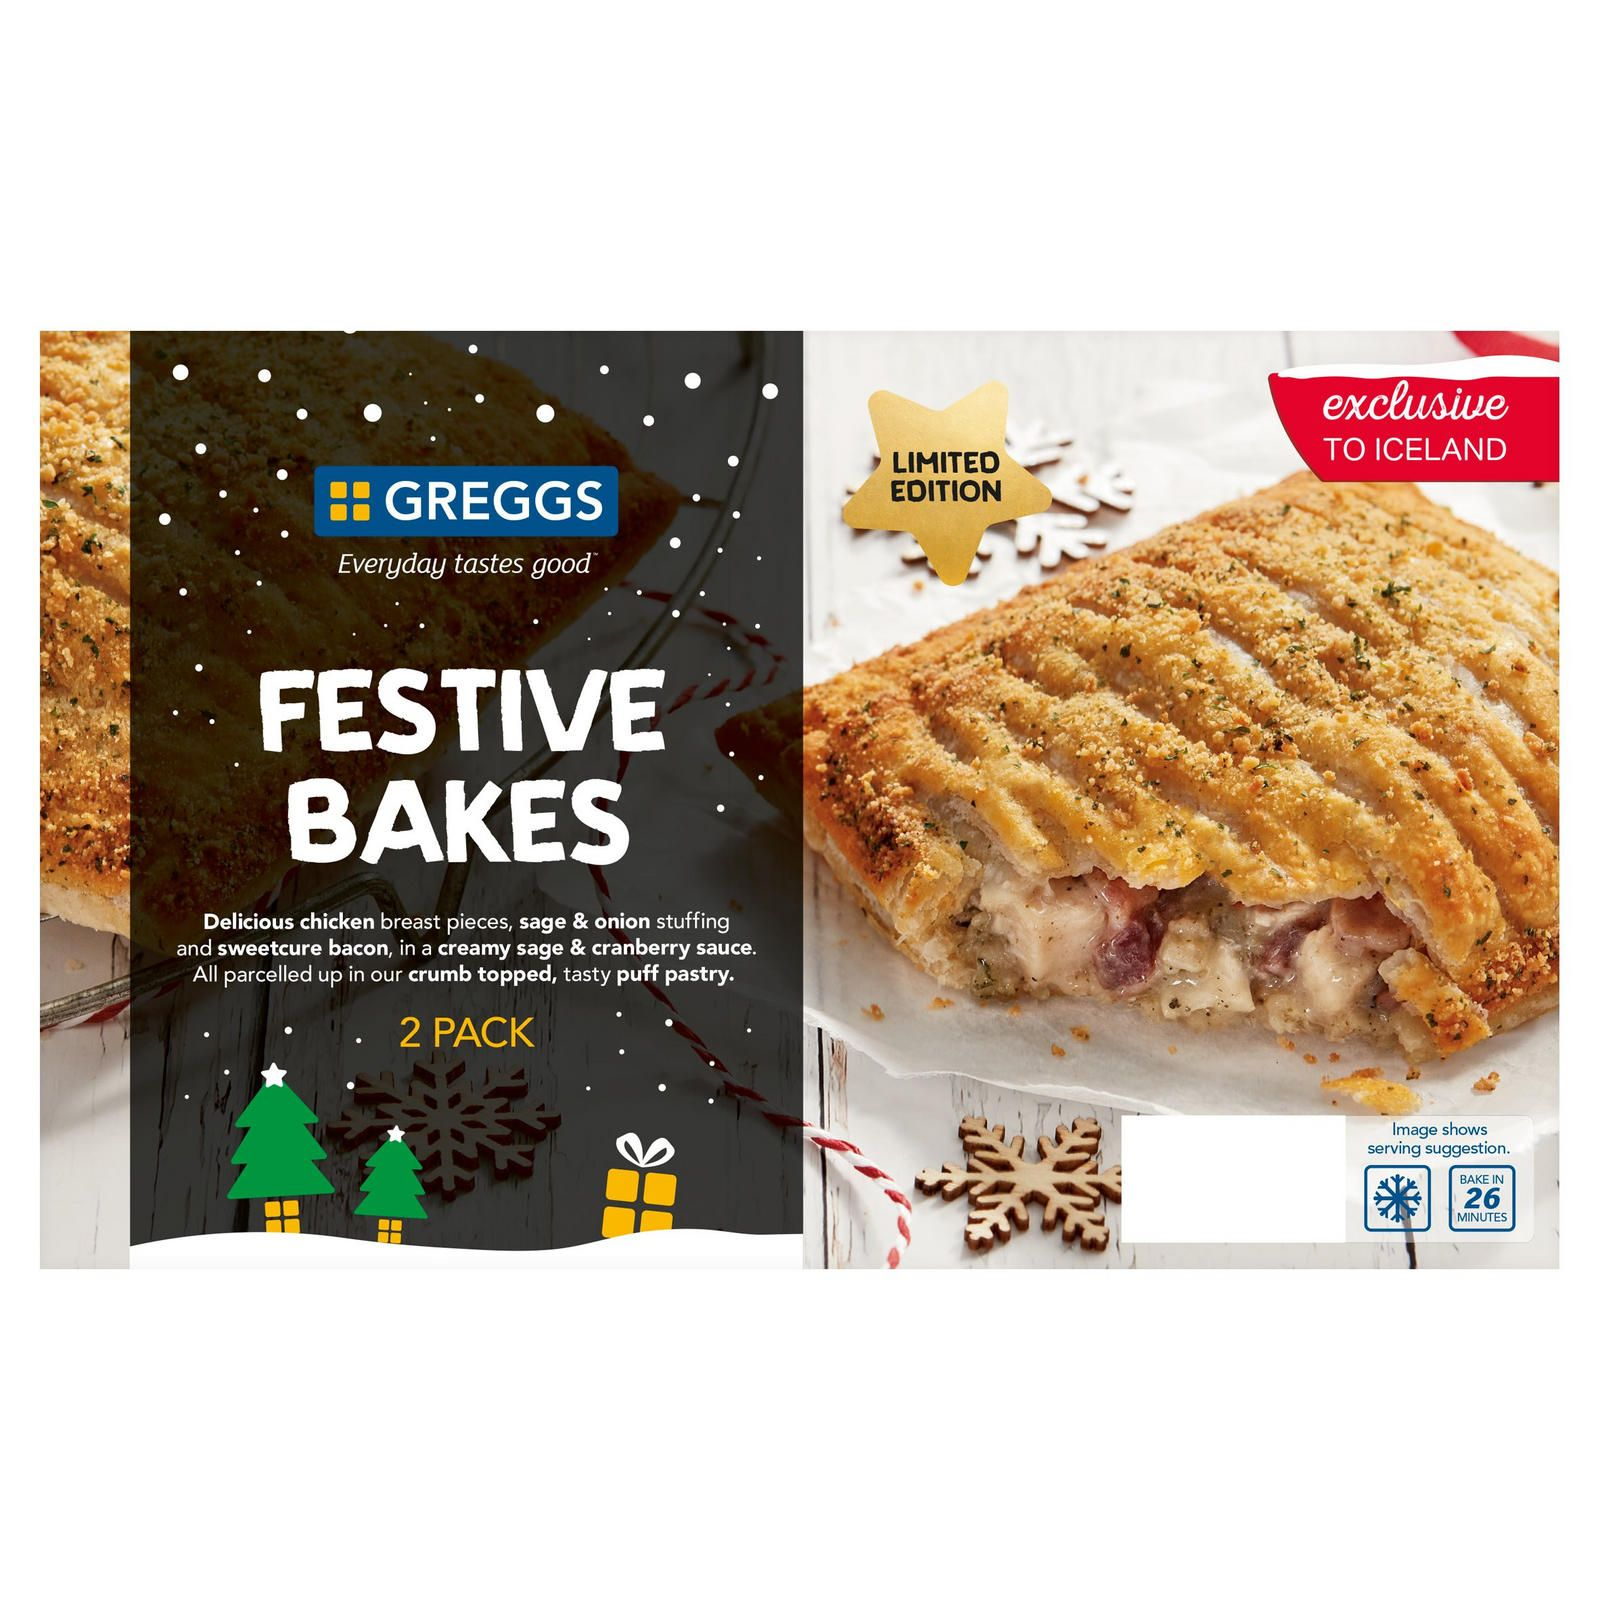 Iceland Is Selling Greggs' Frozen Festive Bakes Again